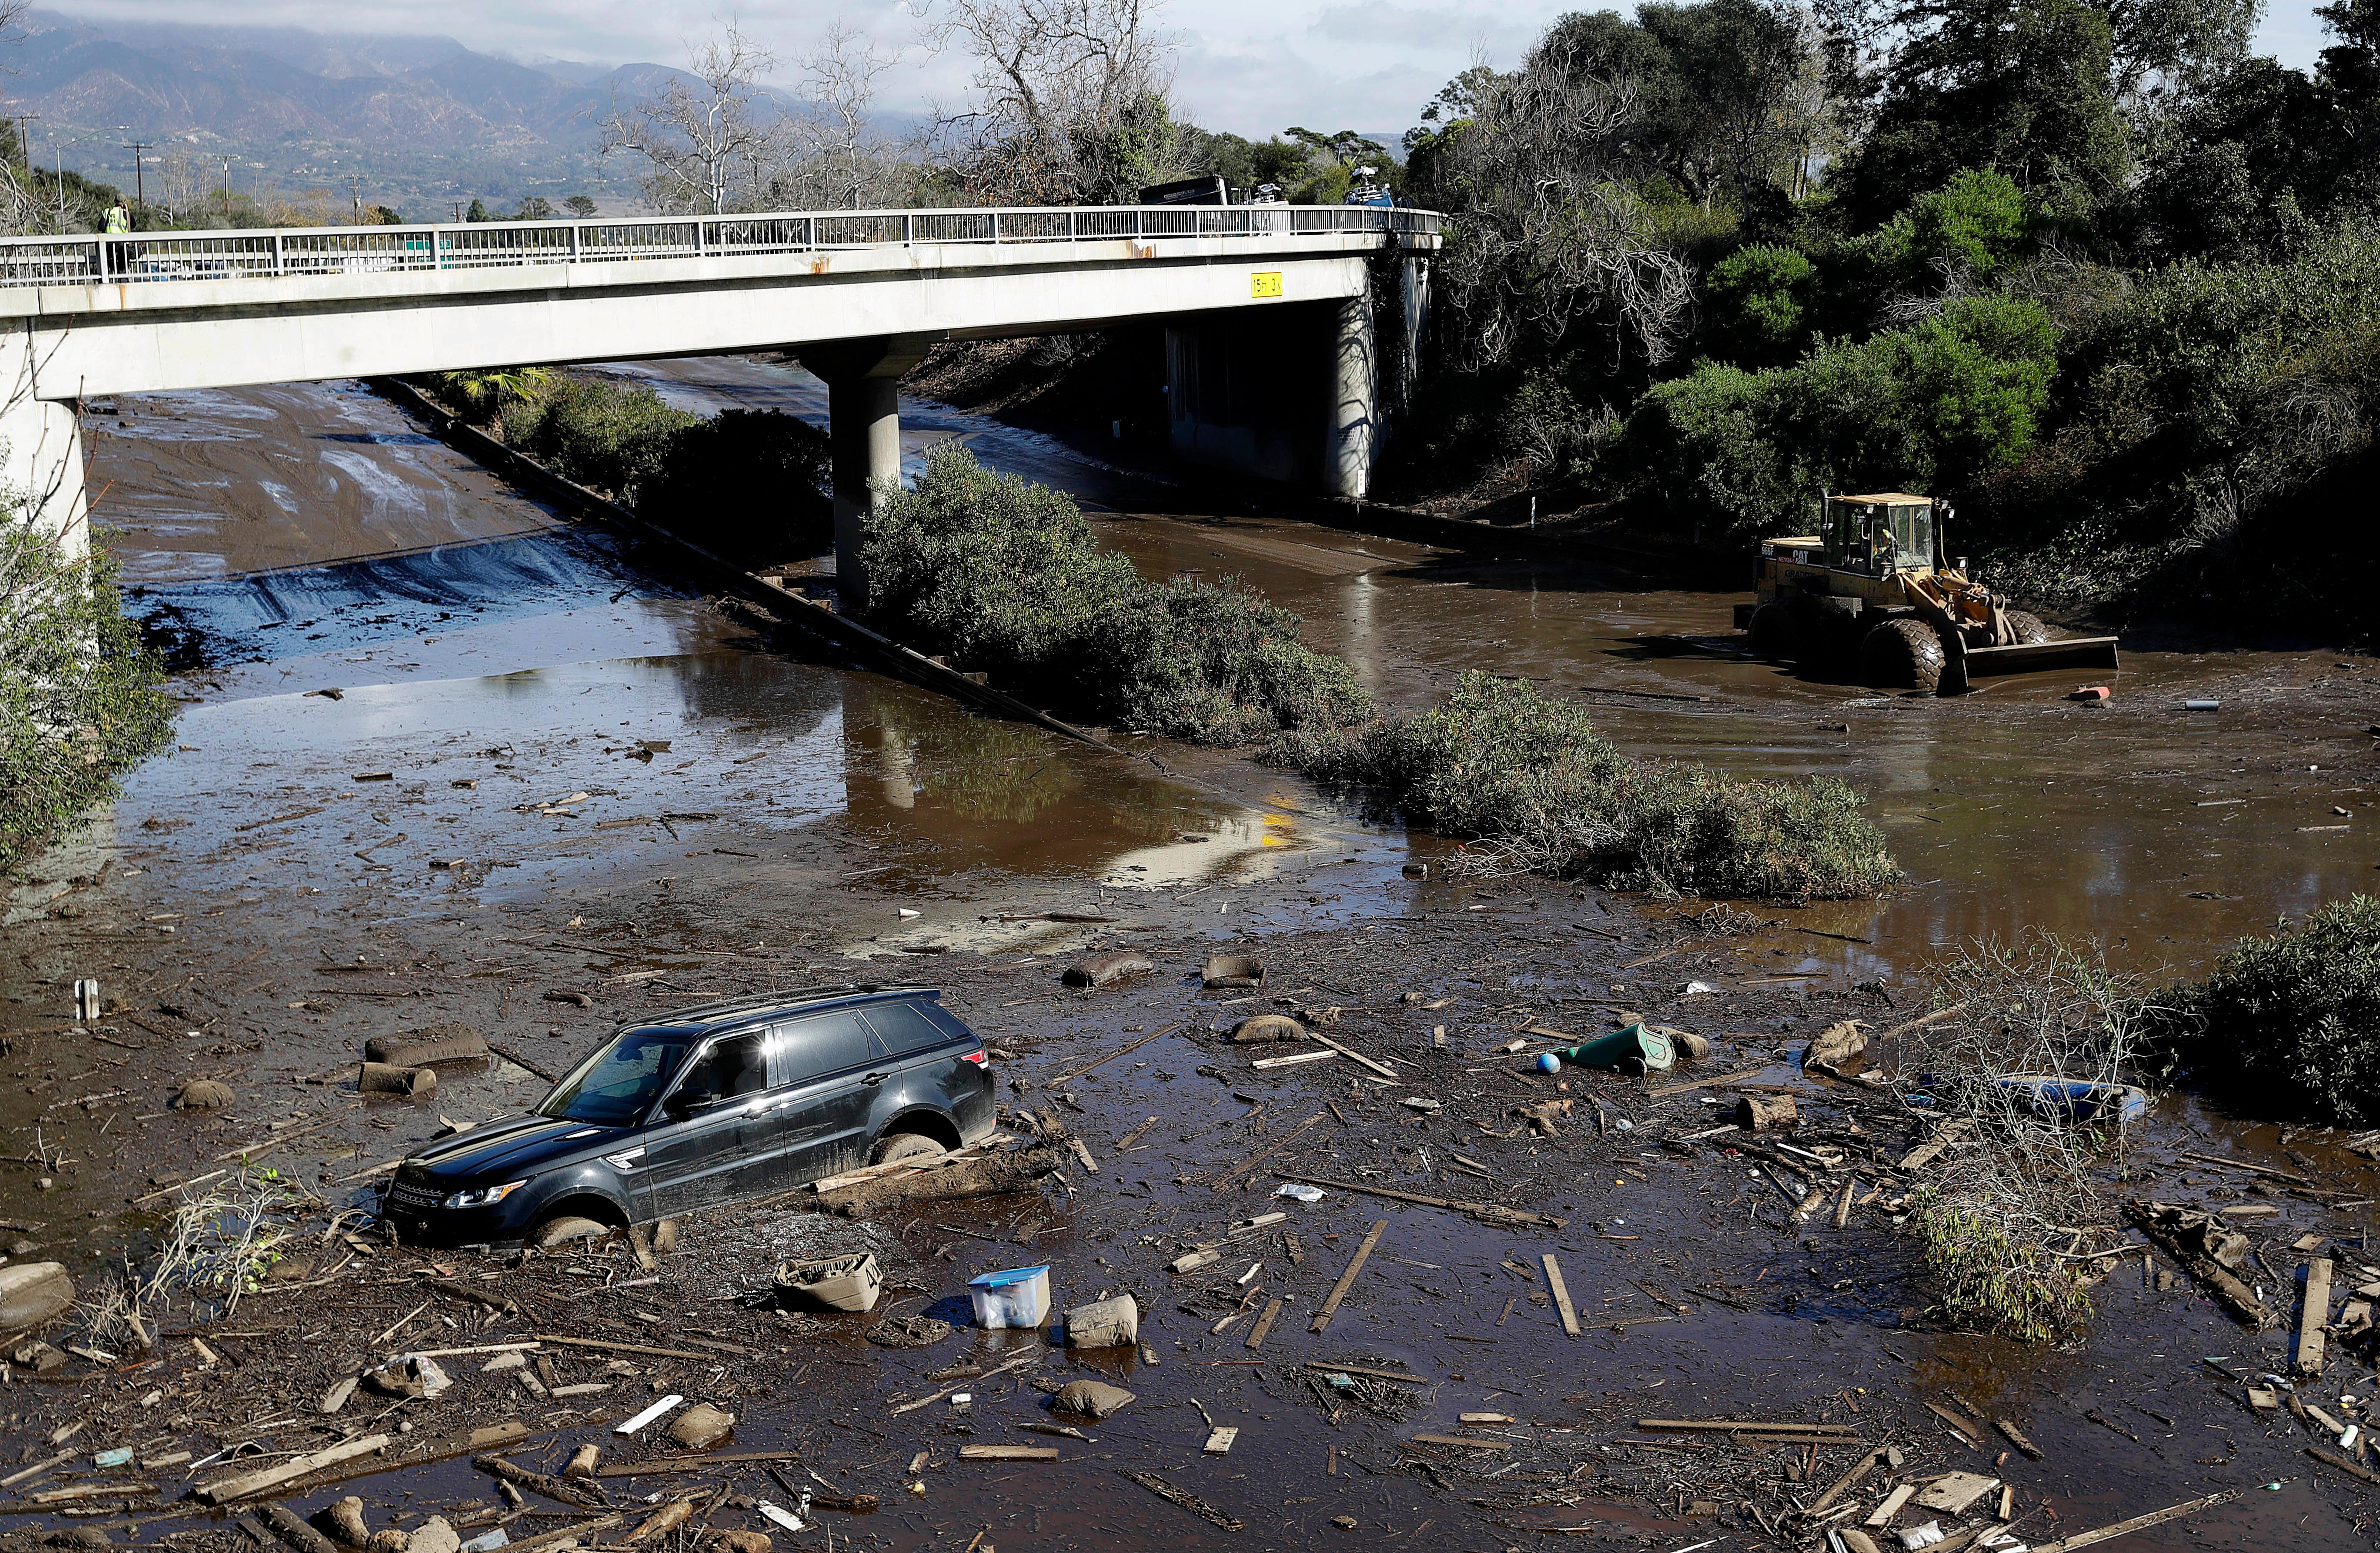 A bulldozer moves debris as a vehicle sits stranded in flooded water on U.S. Highway 101 in Montecito, Calif., Wednesday, Jan. 10, 2018. Dozens of homes were swept away or heavily damaged and several people were killed Tuesday as downpours sent mud and boulders roaring down hills stripped of vegetation by a gigantic wildfire that raged in Southern California last month. (AP Photo/Marcio Jose Sanchez)